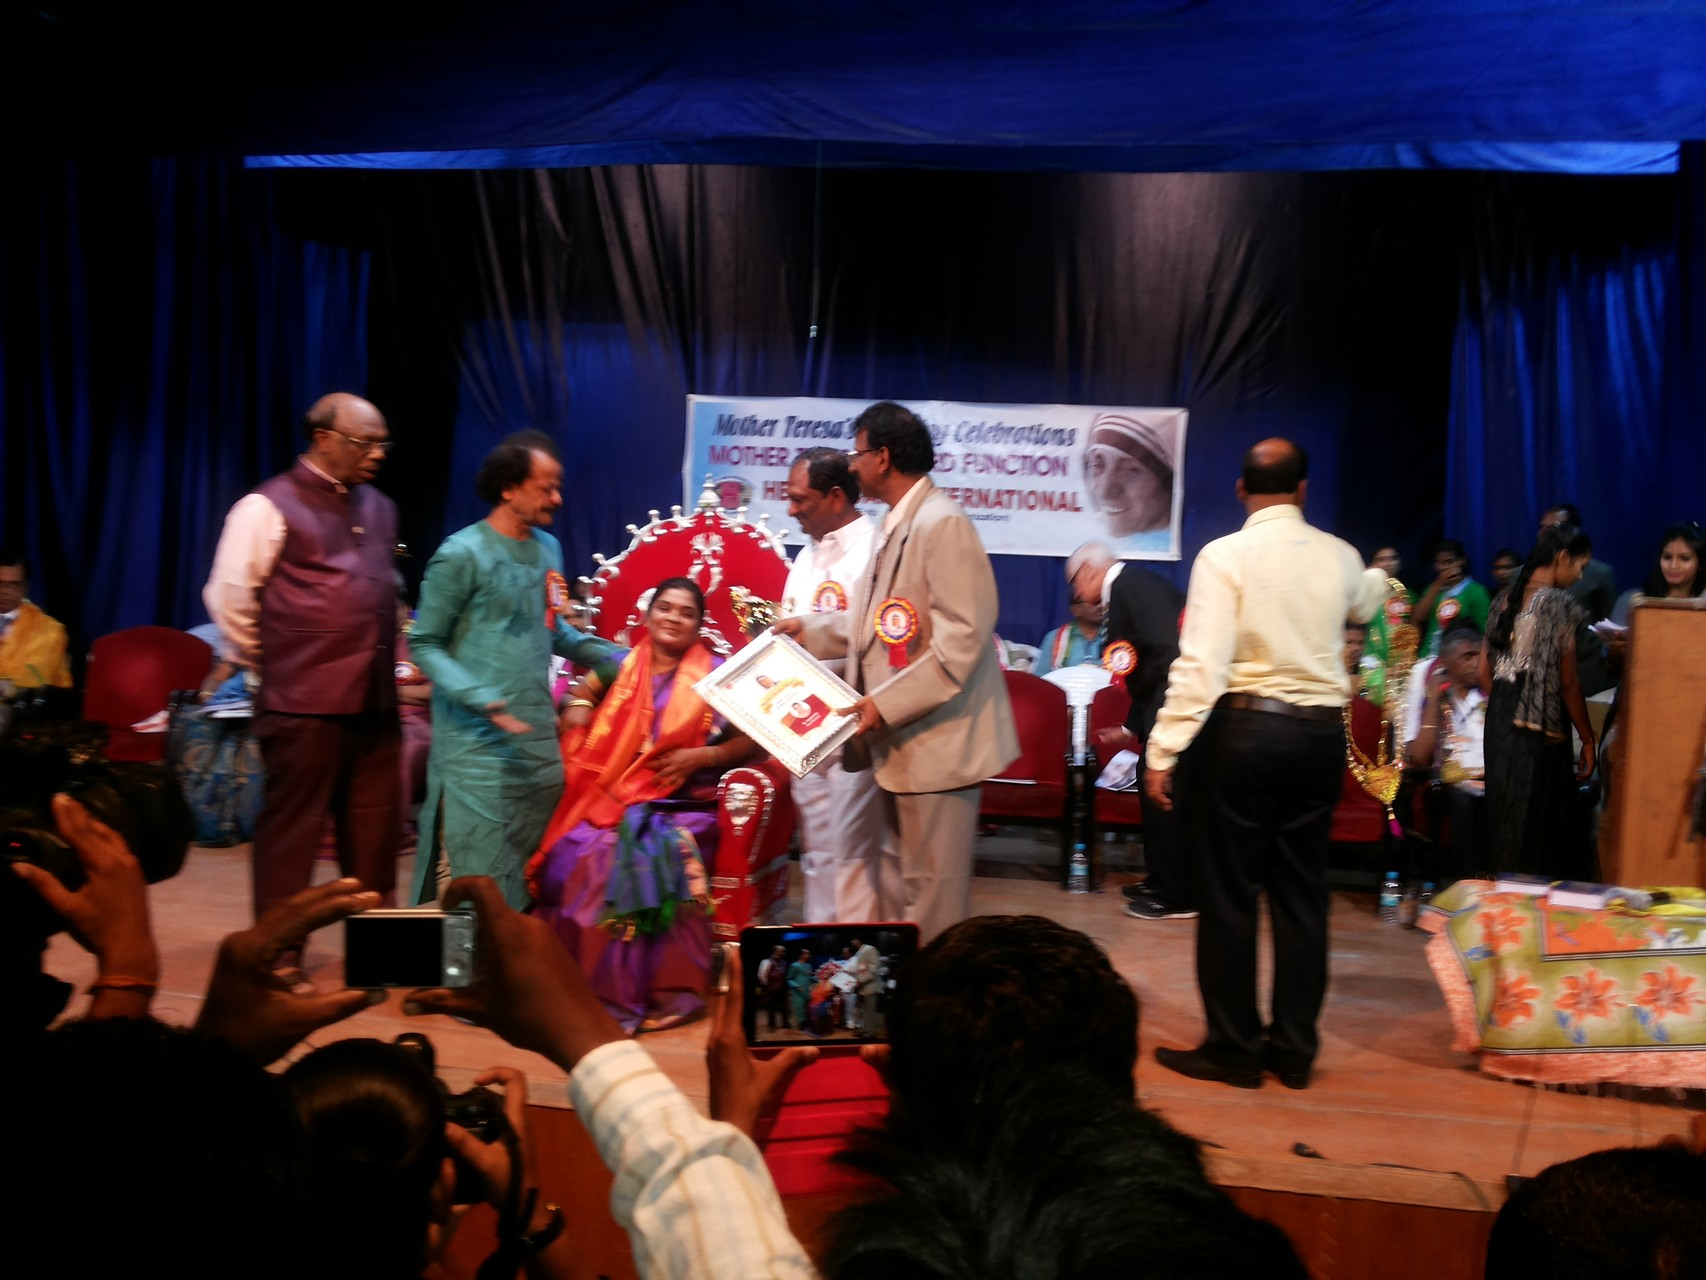 Ms.Jayamma has been facilitated by Health Care International for her contributions to the vulnerable women and children in Hyderabad